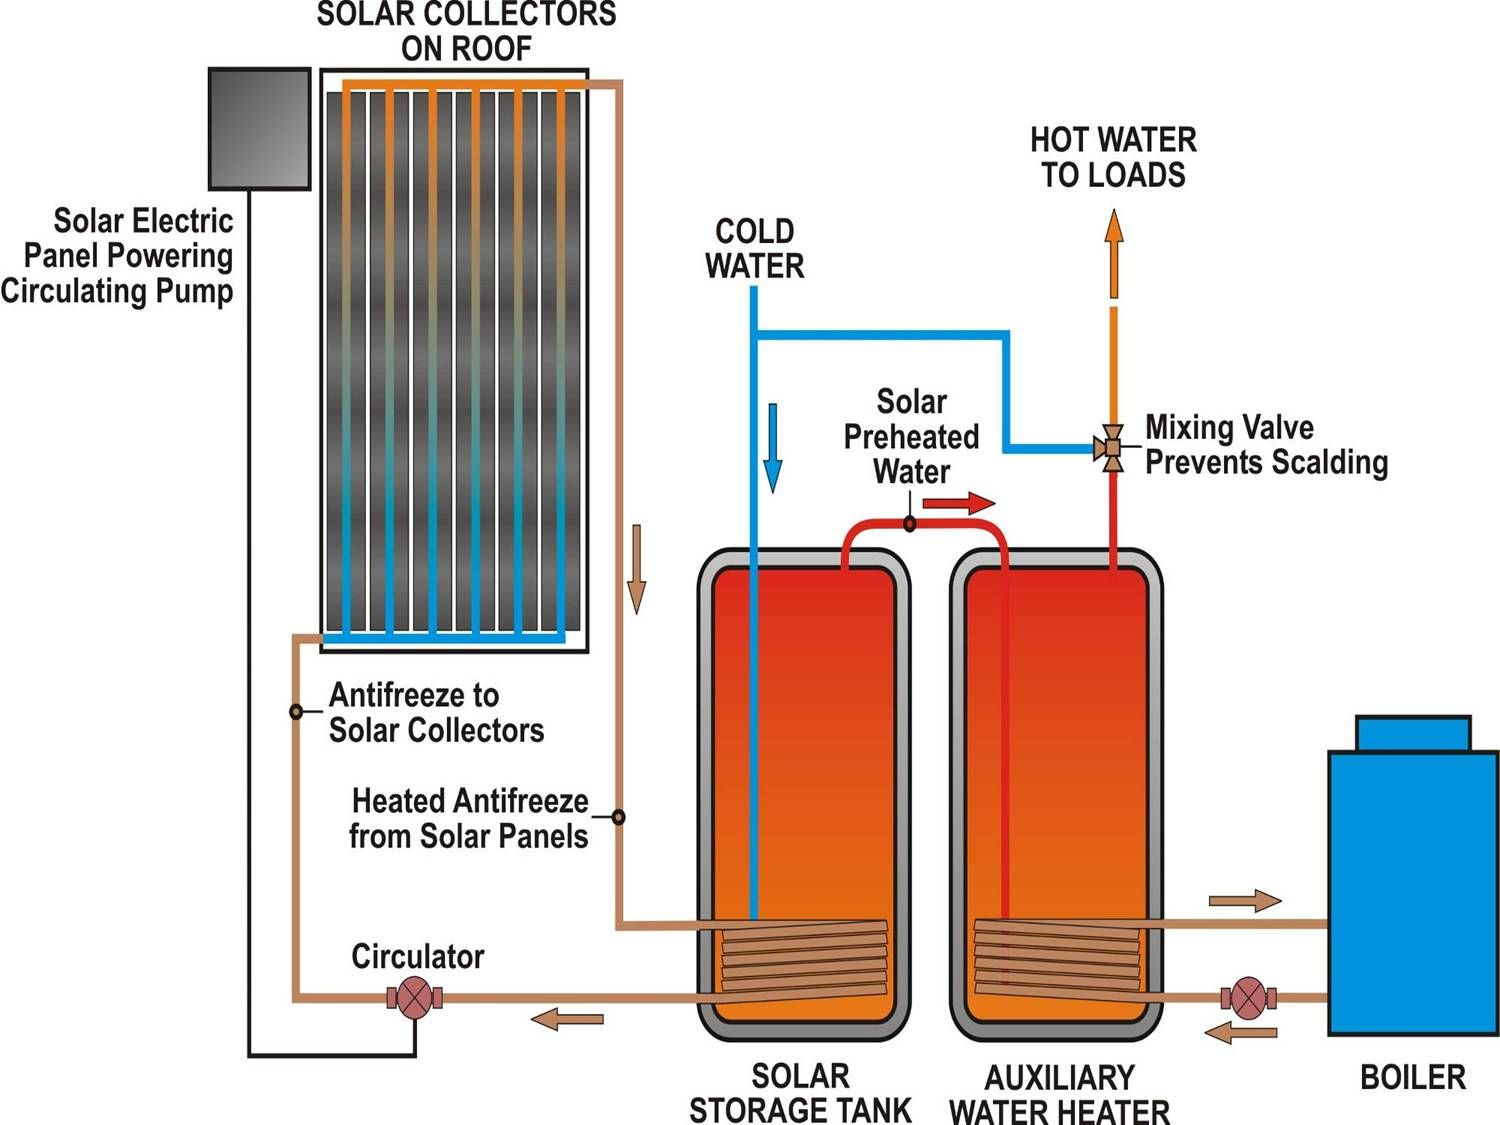 medium resolution of domestic solar hot water diagram offthegrid solar water heating wiring diagram aquaponics diy water heater vw fuel pump heater